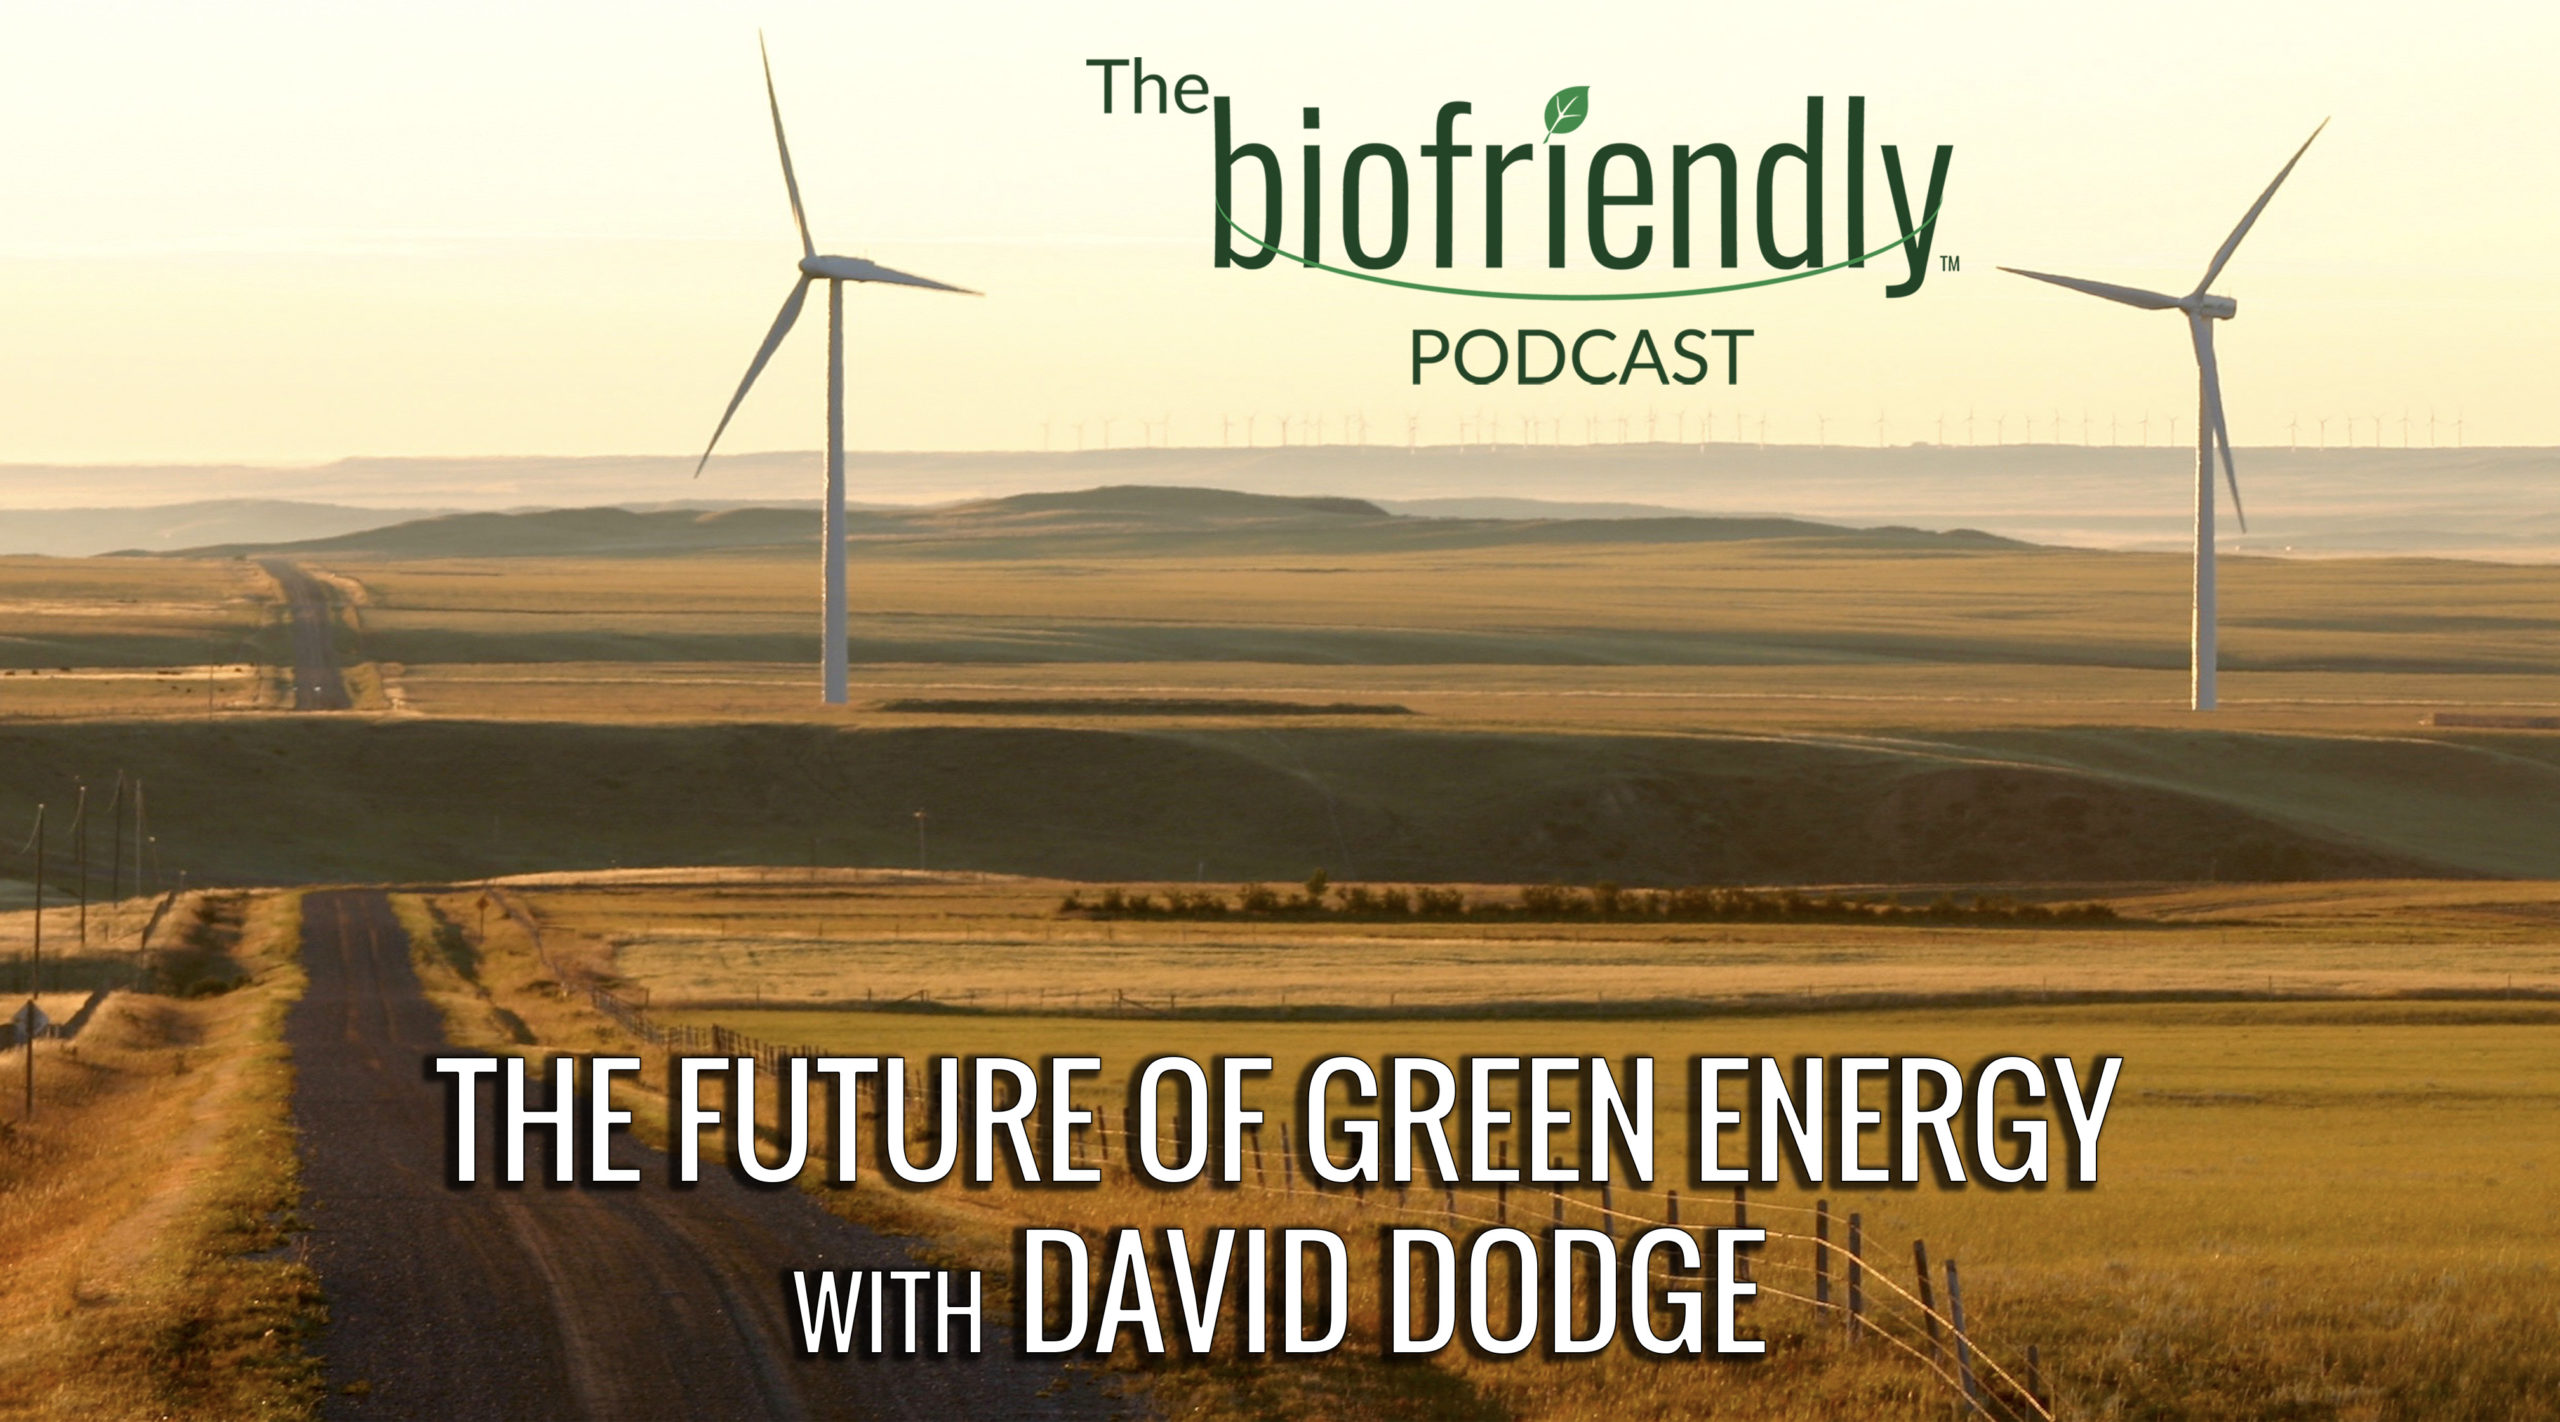 The Biofriendly Podcast - Episode 69 - The Future of Green Energy with David Dodge